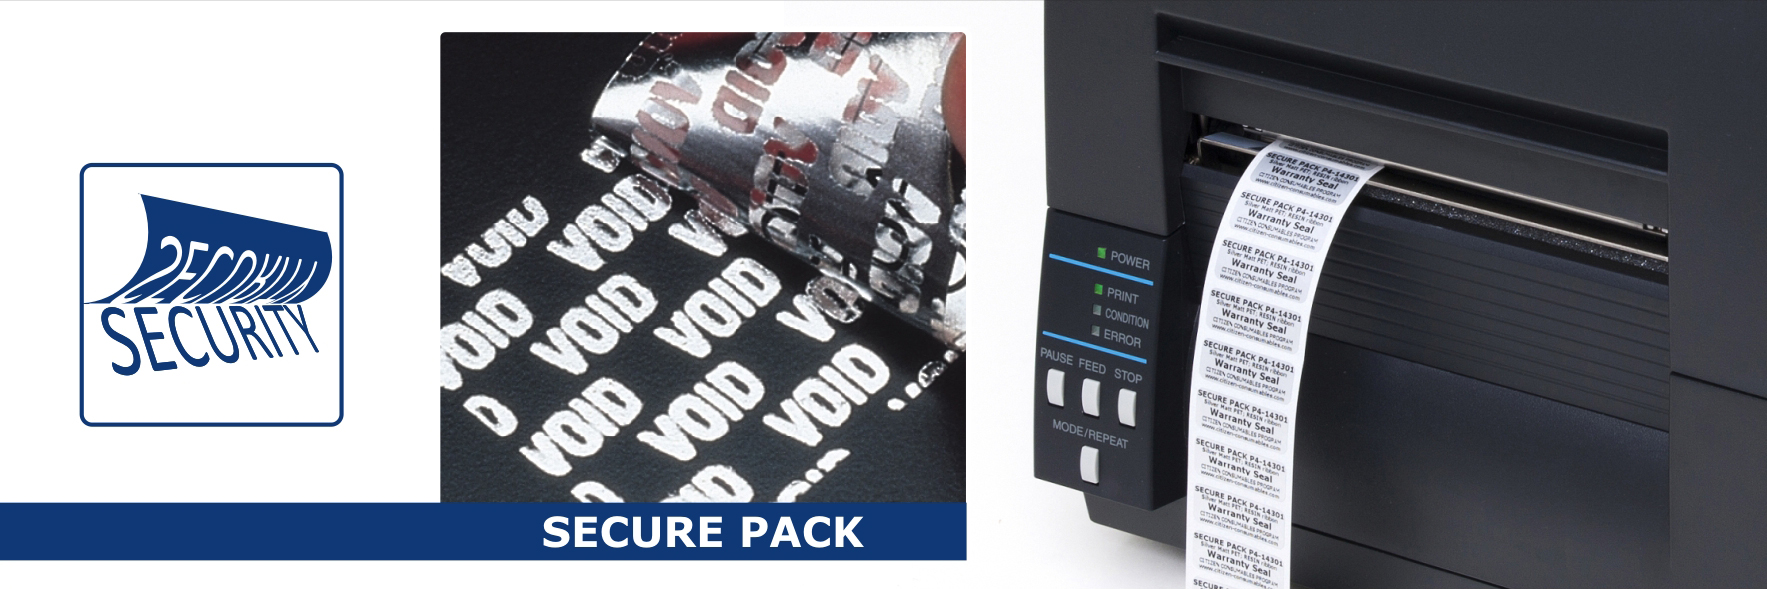 Secure Pack – protection from unwanted interference